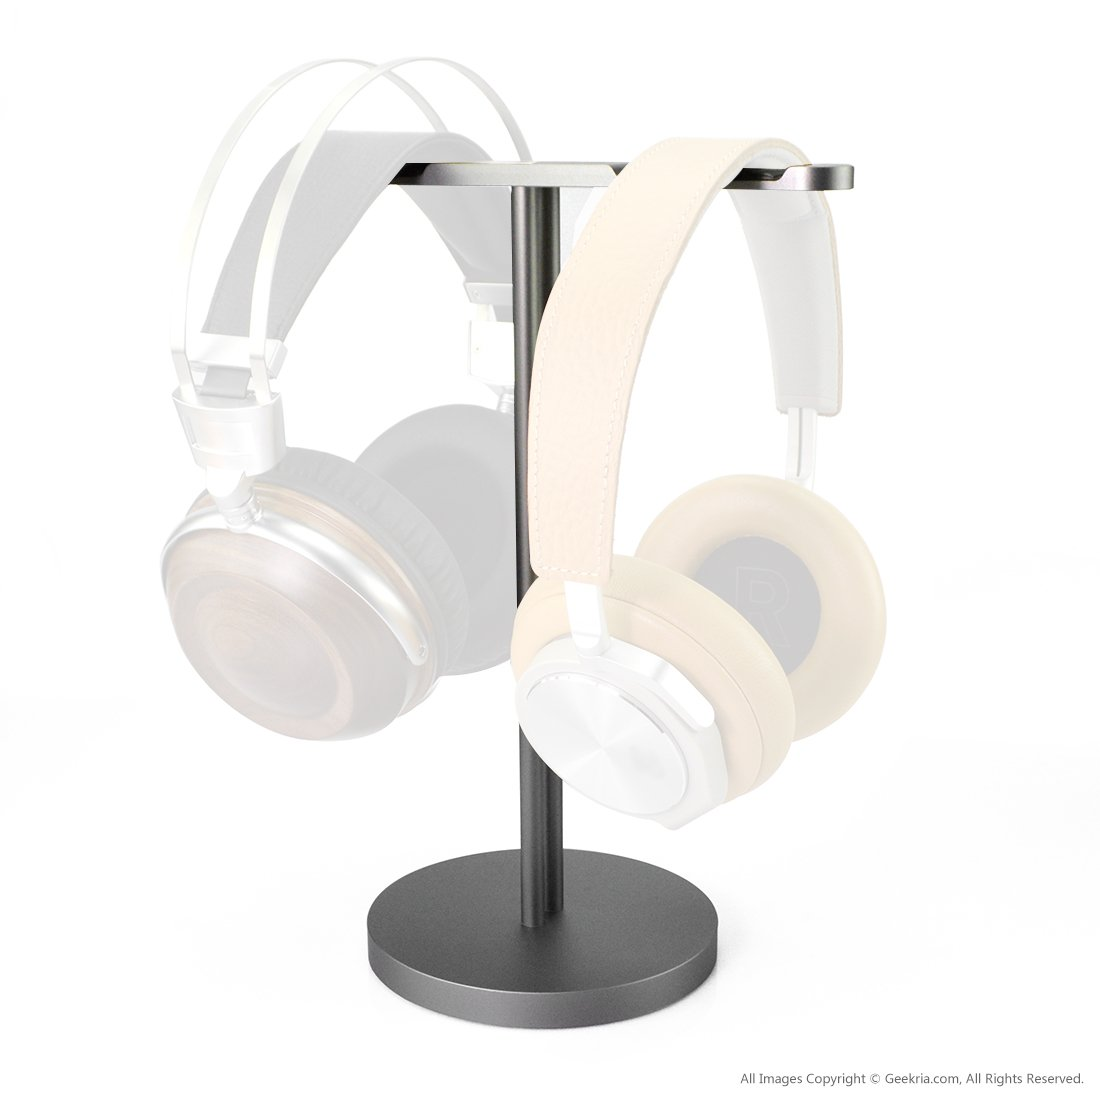 Aluminum Dual Headphones Stand/Headset Holder/Desk Display Hanger, Fit Bose, Sennheiser, Sony, Beyerdynamic, AKG, ATH, B&O and Many Earphones (Silver) by GEEKRIA